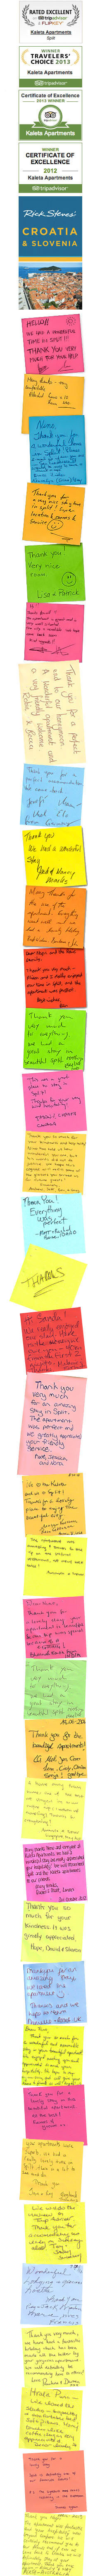 Apartments Split Croatia KALETA APARTMENTS - Guests Gratitude Notes